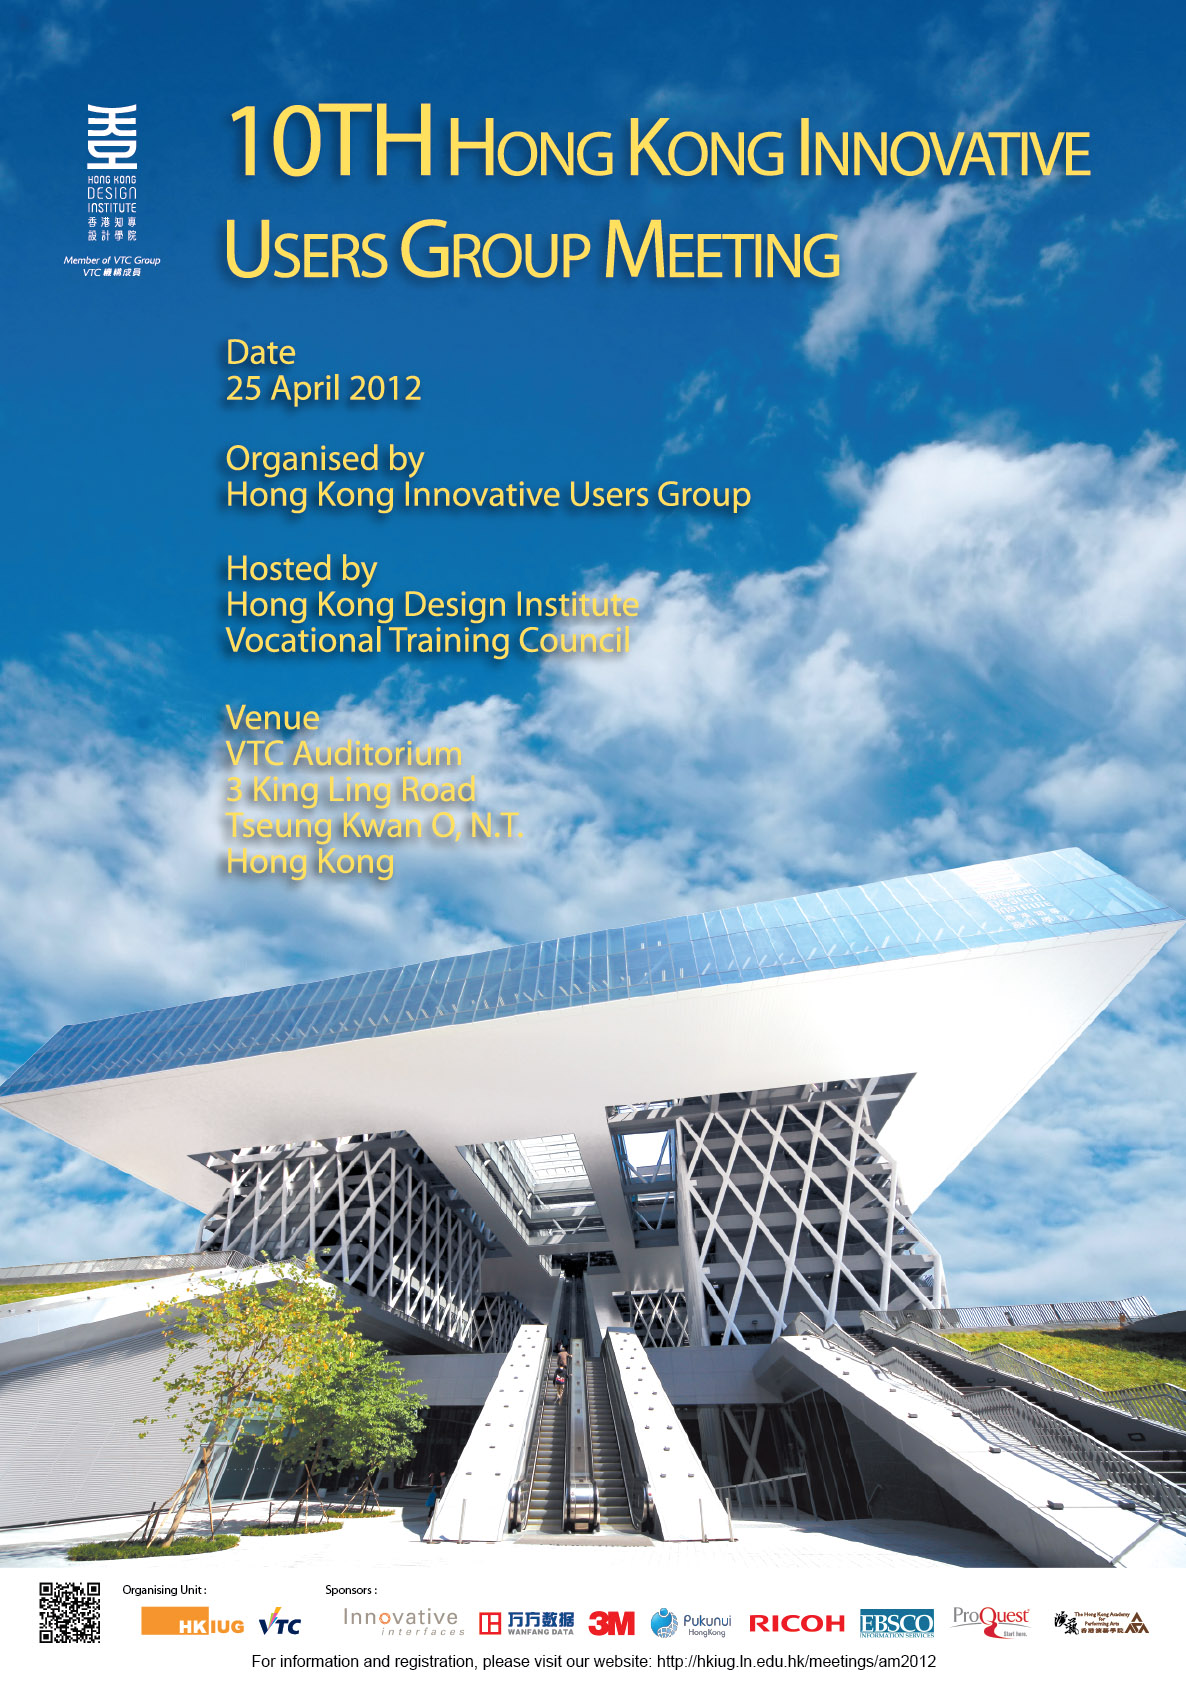 10th Hong Kong Innovative Users Group Meeting